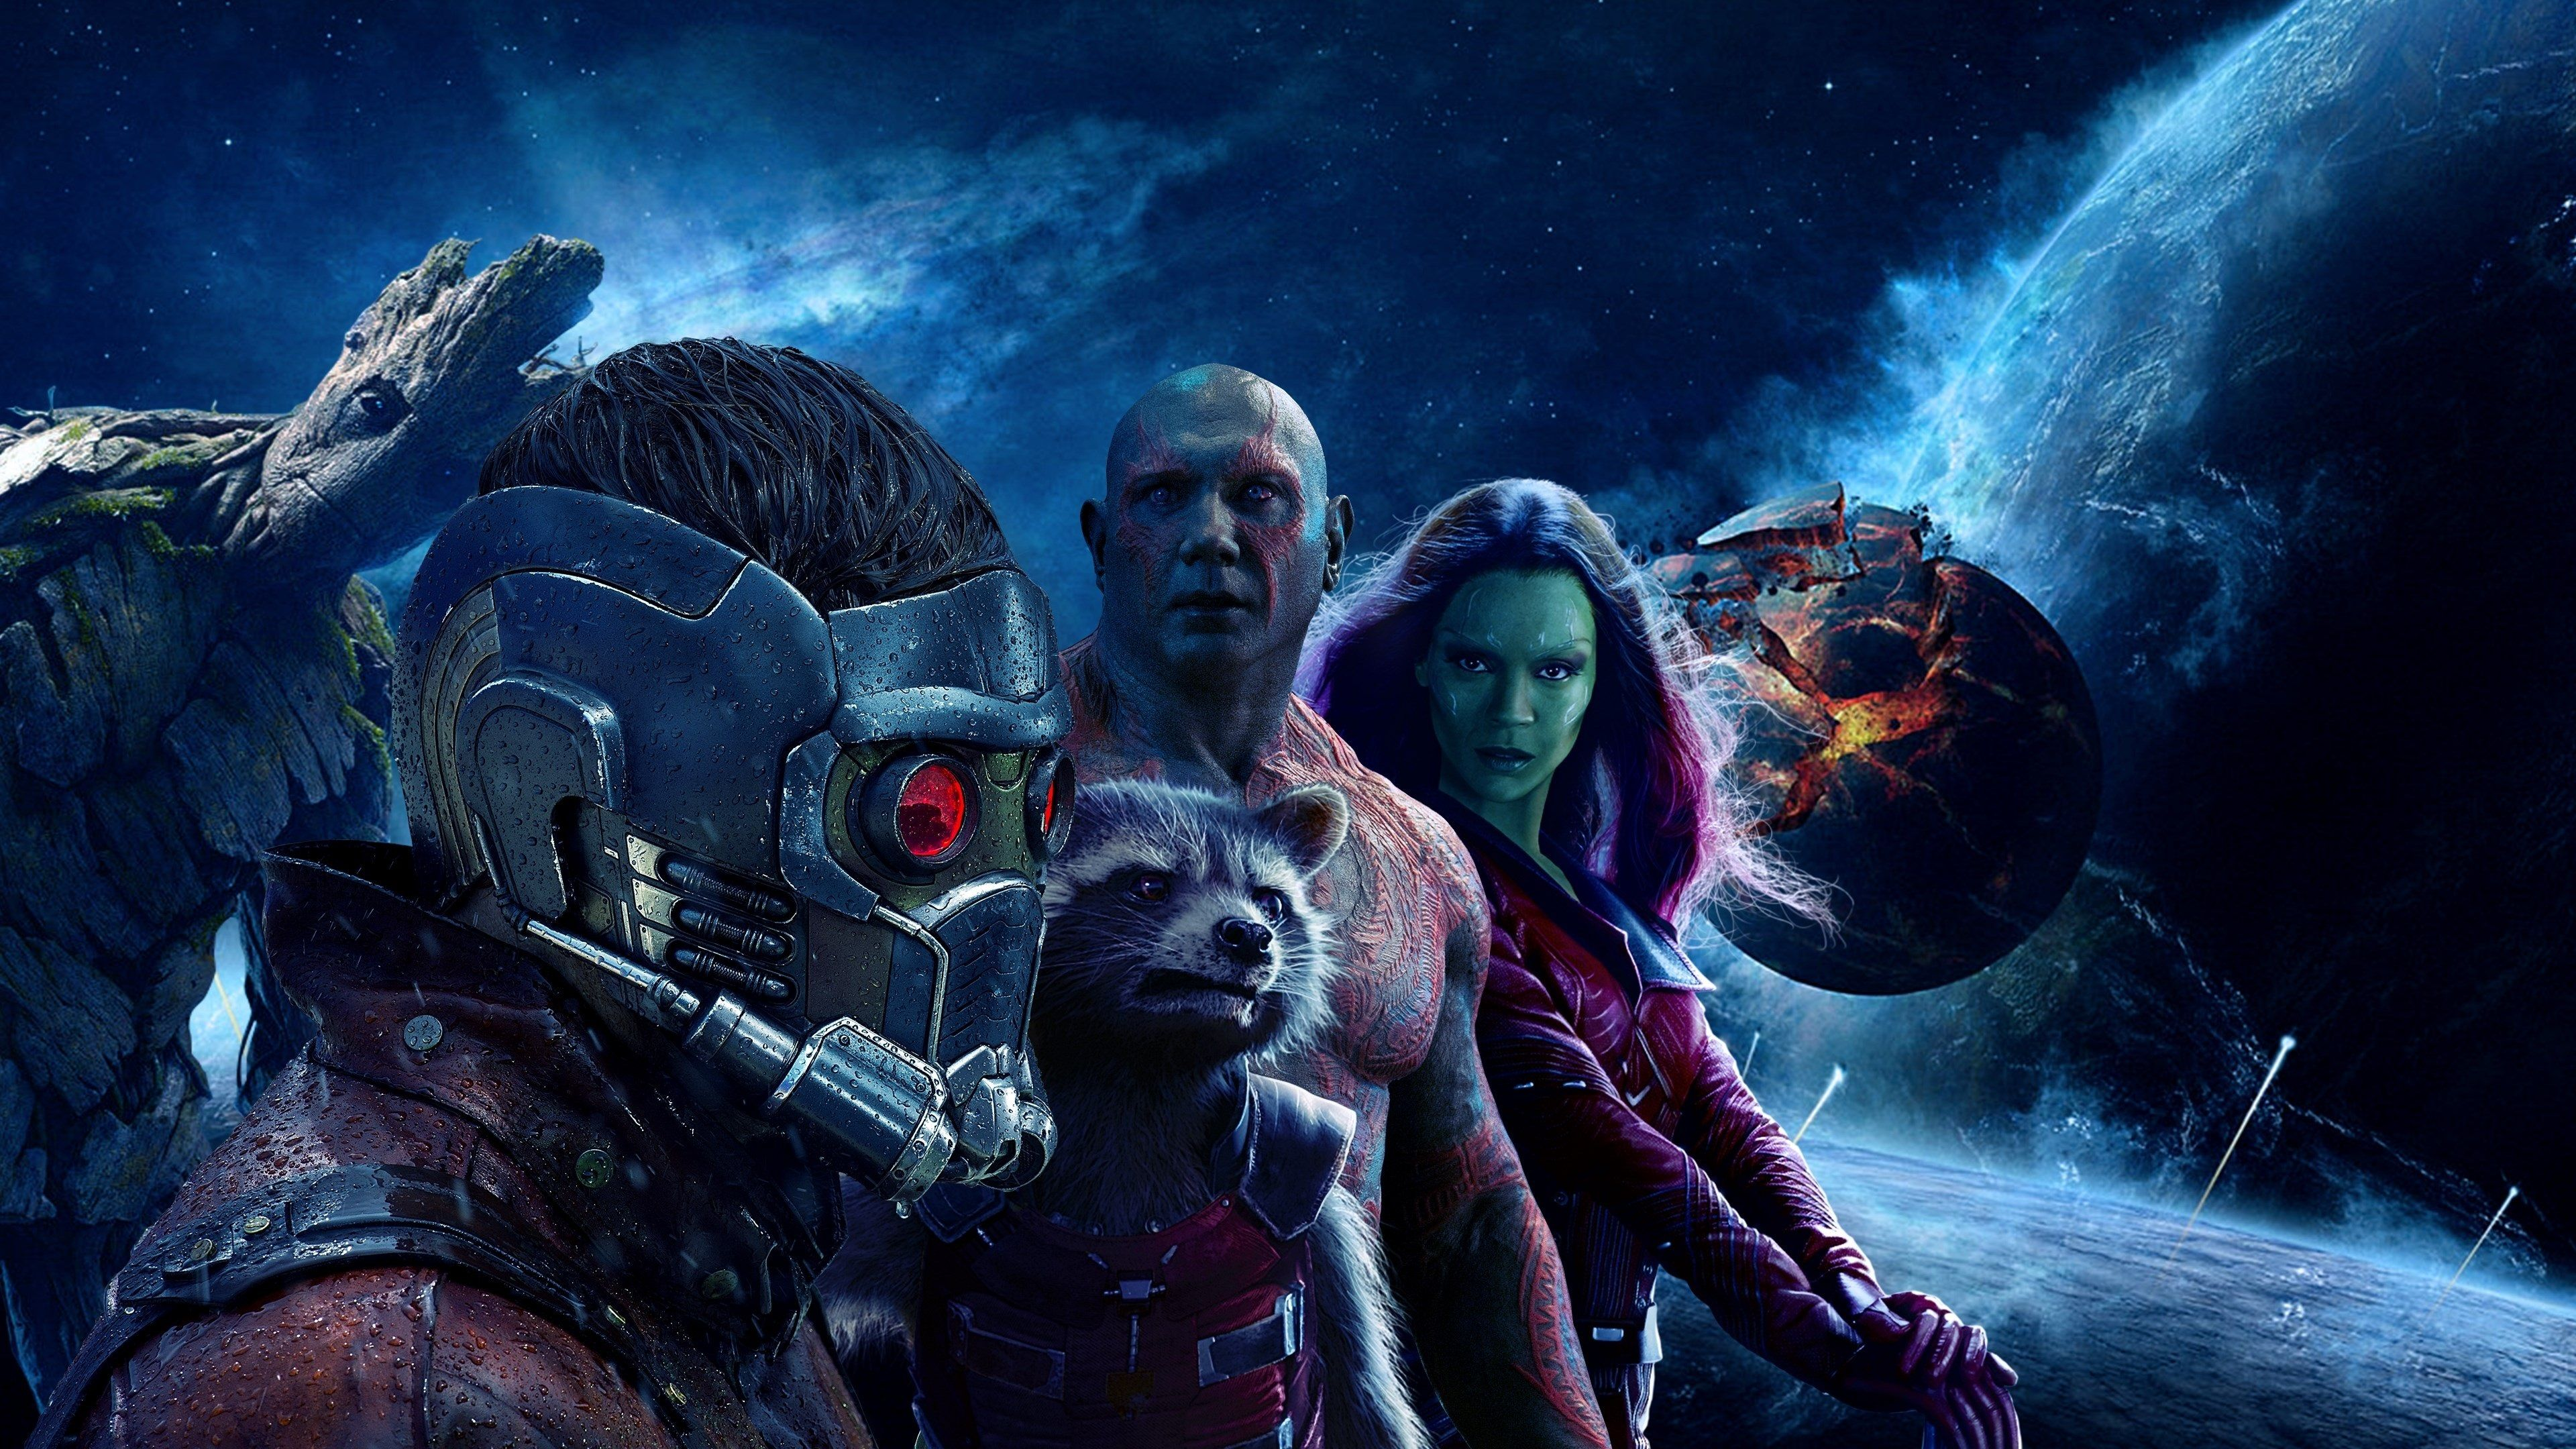 3840x2160 Guardians Of The Galaxy Vol 2 4k Images For Desktop Background Guardians Of The Galaxy Guardians Of The Galaxy Vol 2 Galaxy Wallpaper